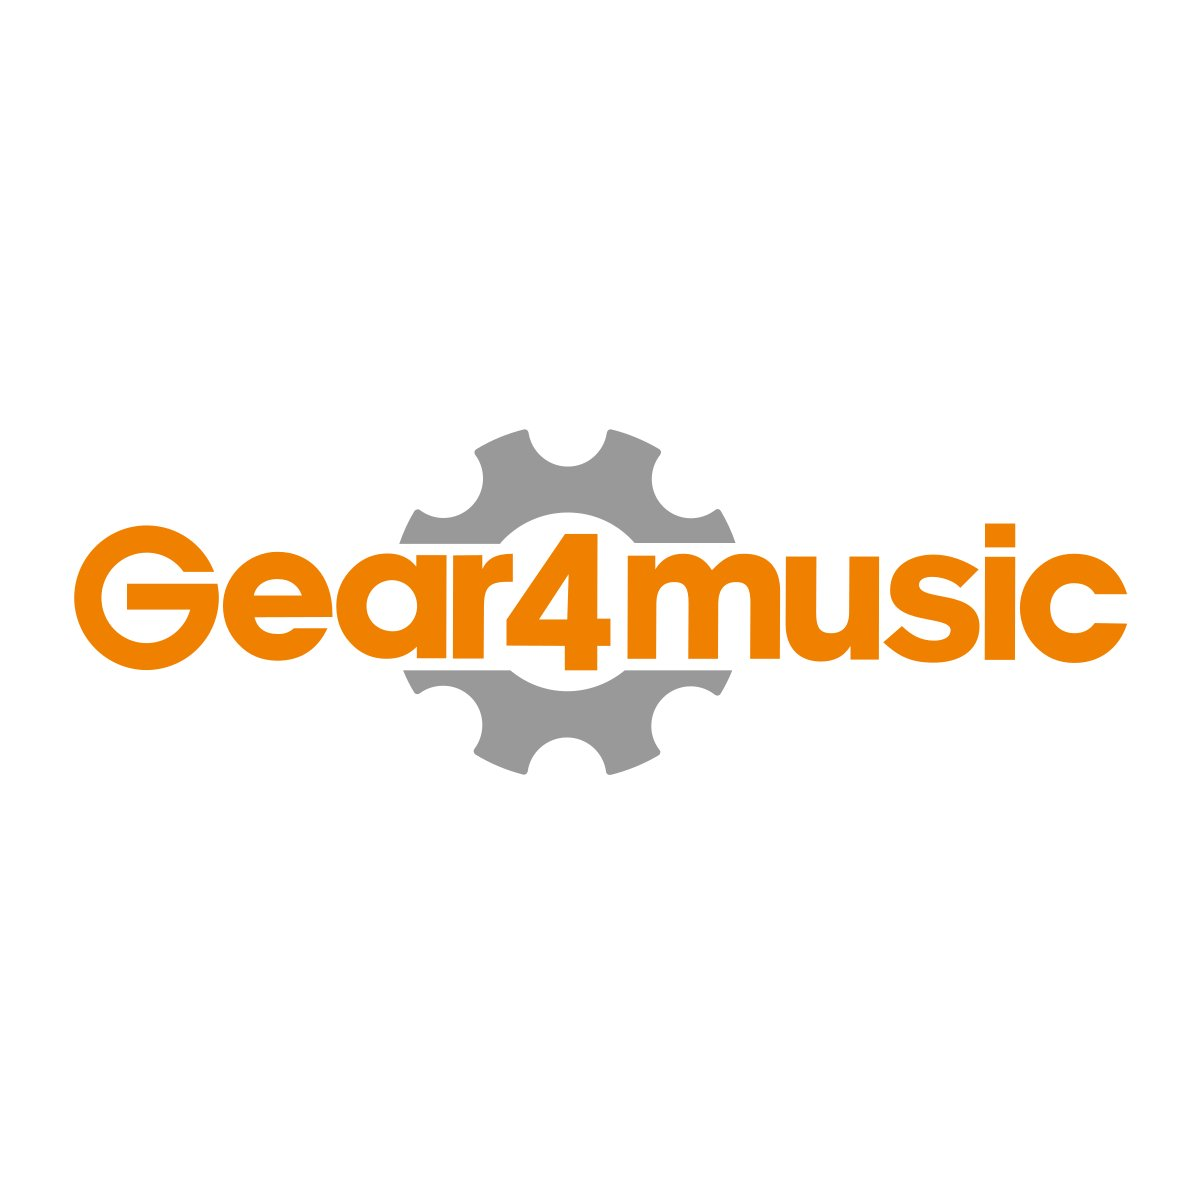 Palheta Gear4music (0.71 mm)